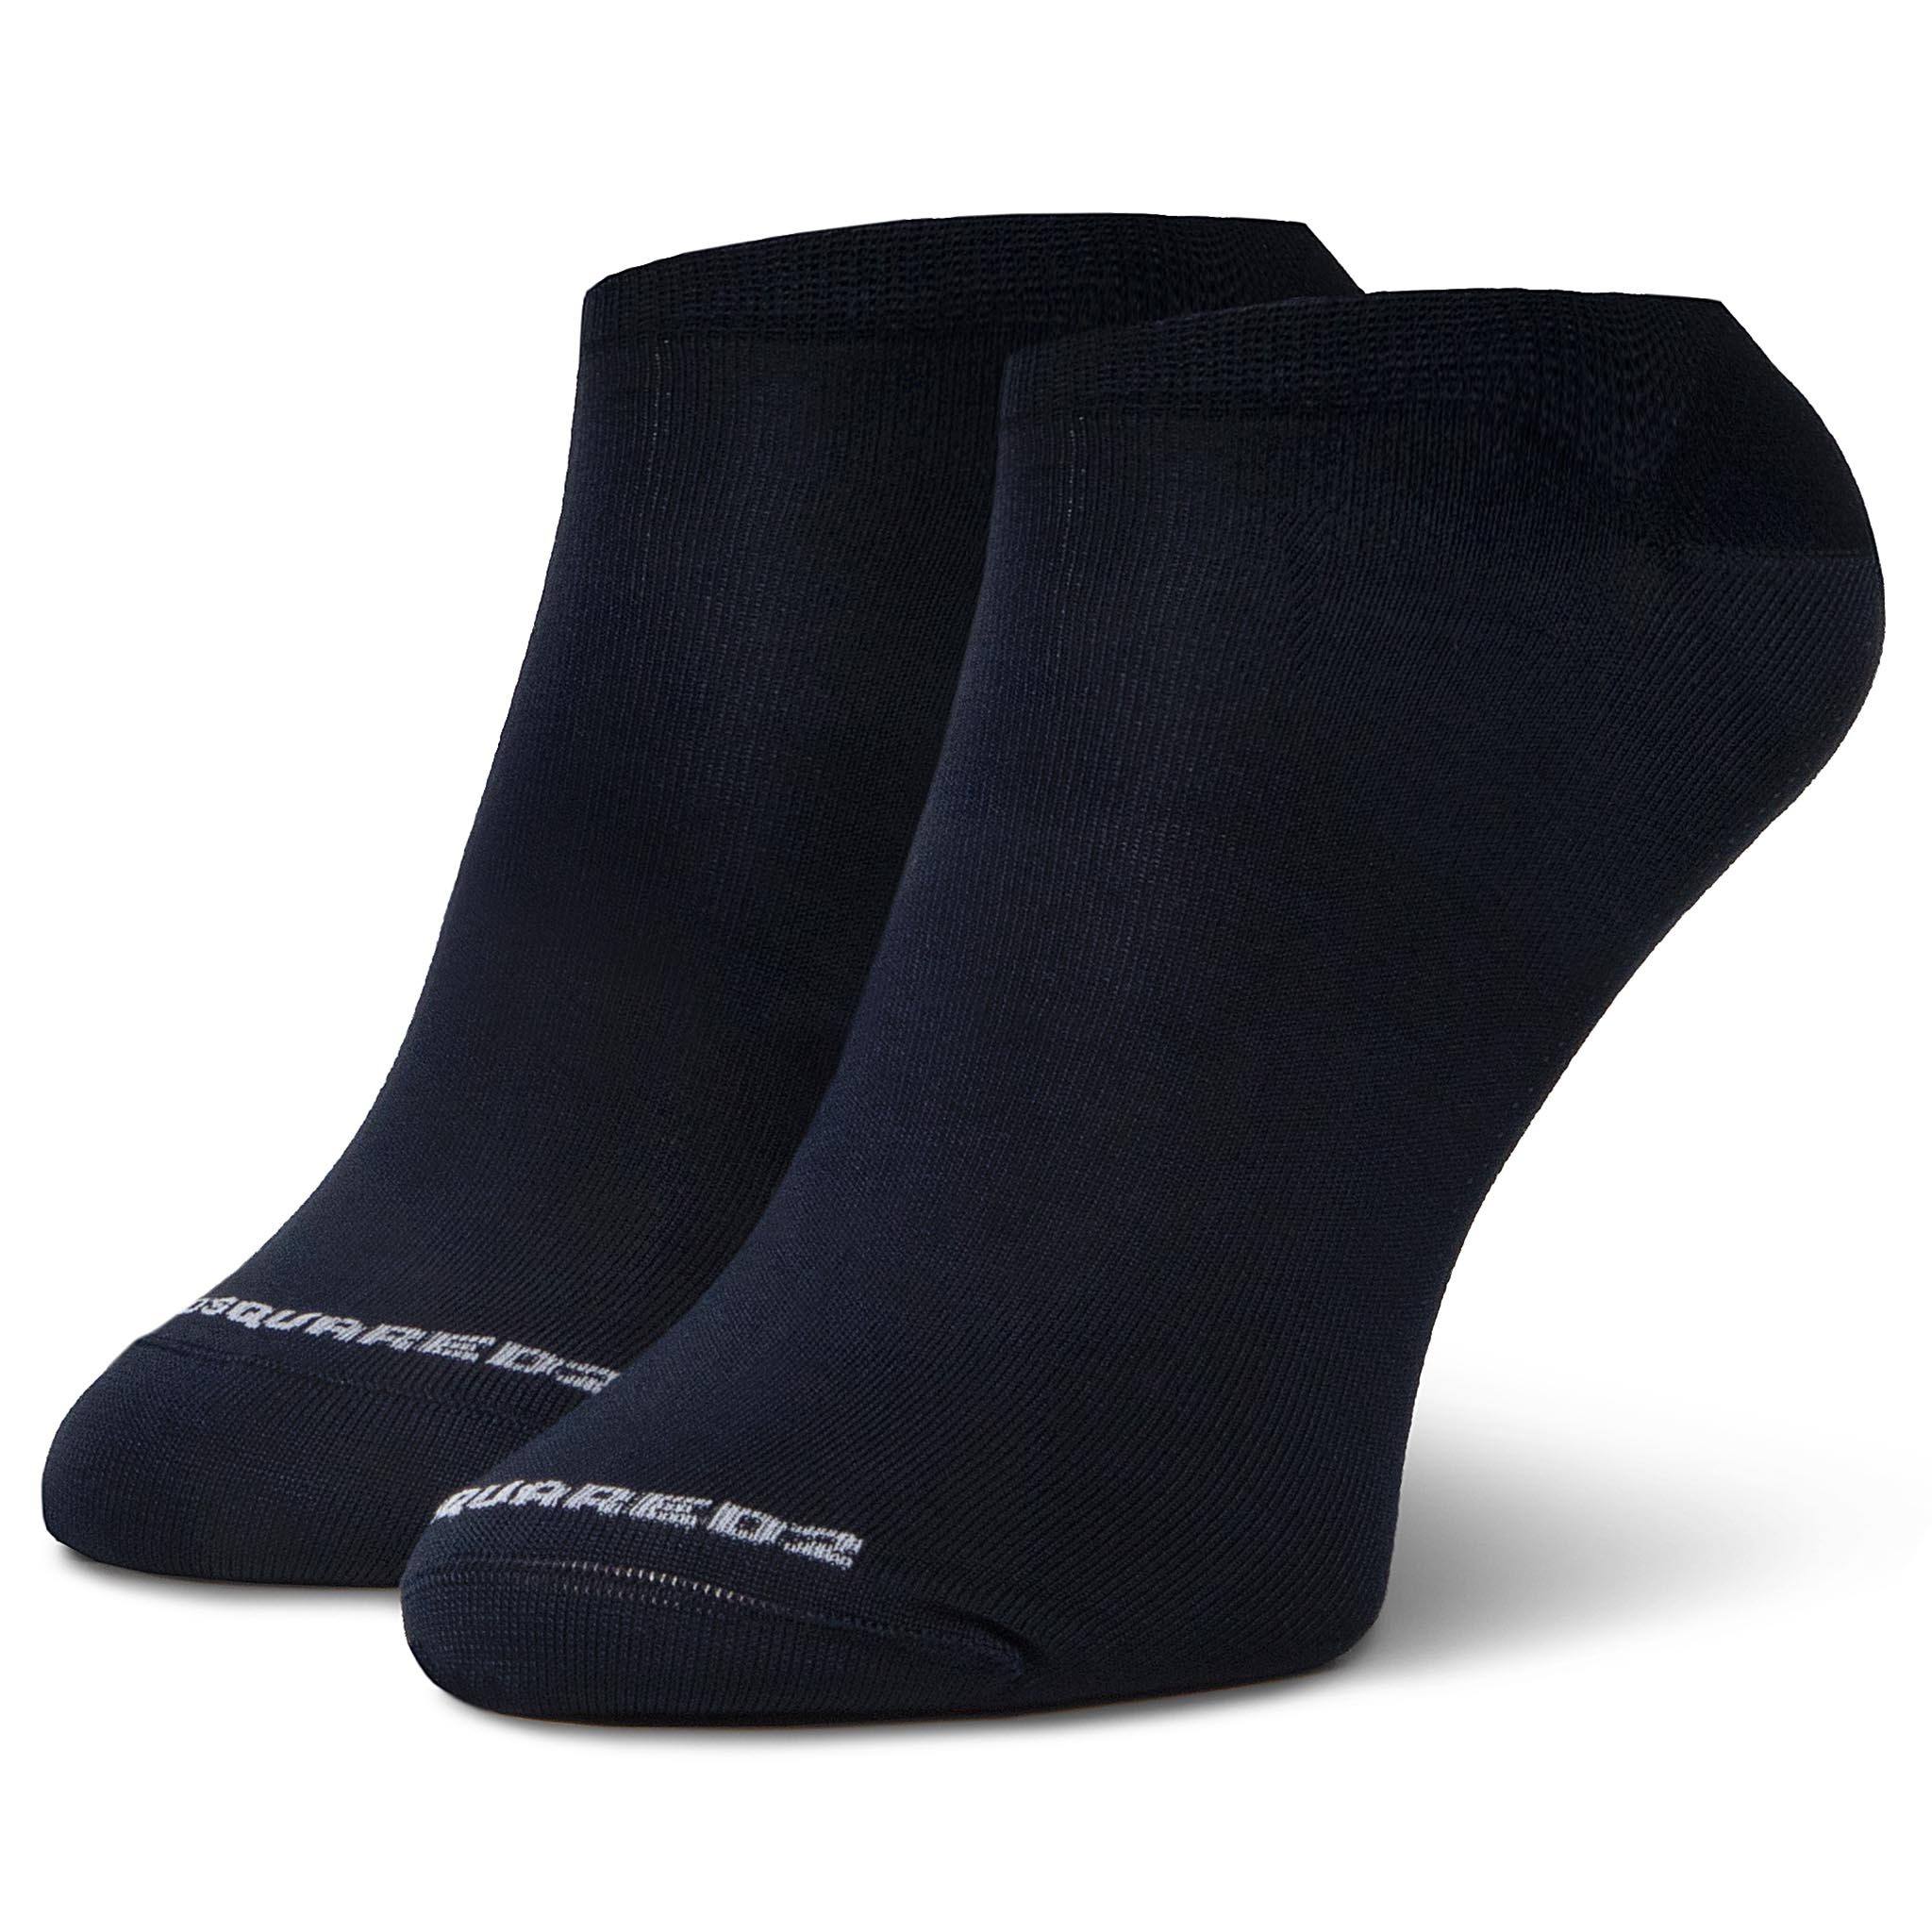 Șosete Medii Unisex Dsquared2 - No Show Socks Dfv161880.410un R.Os Navy imagine epantofi.ro 2021